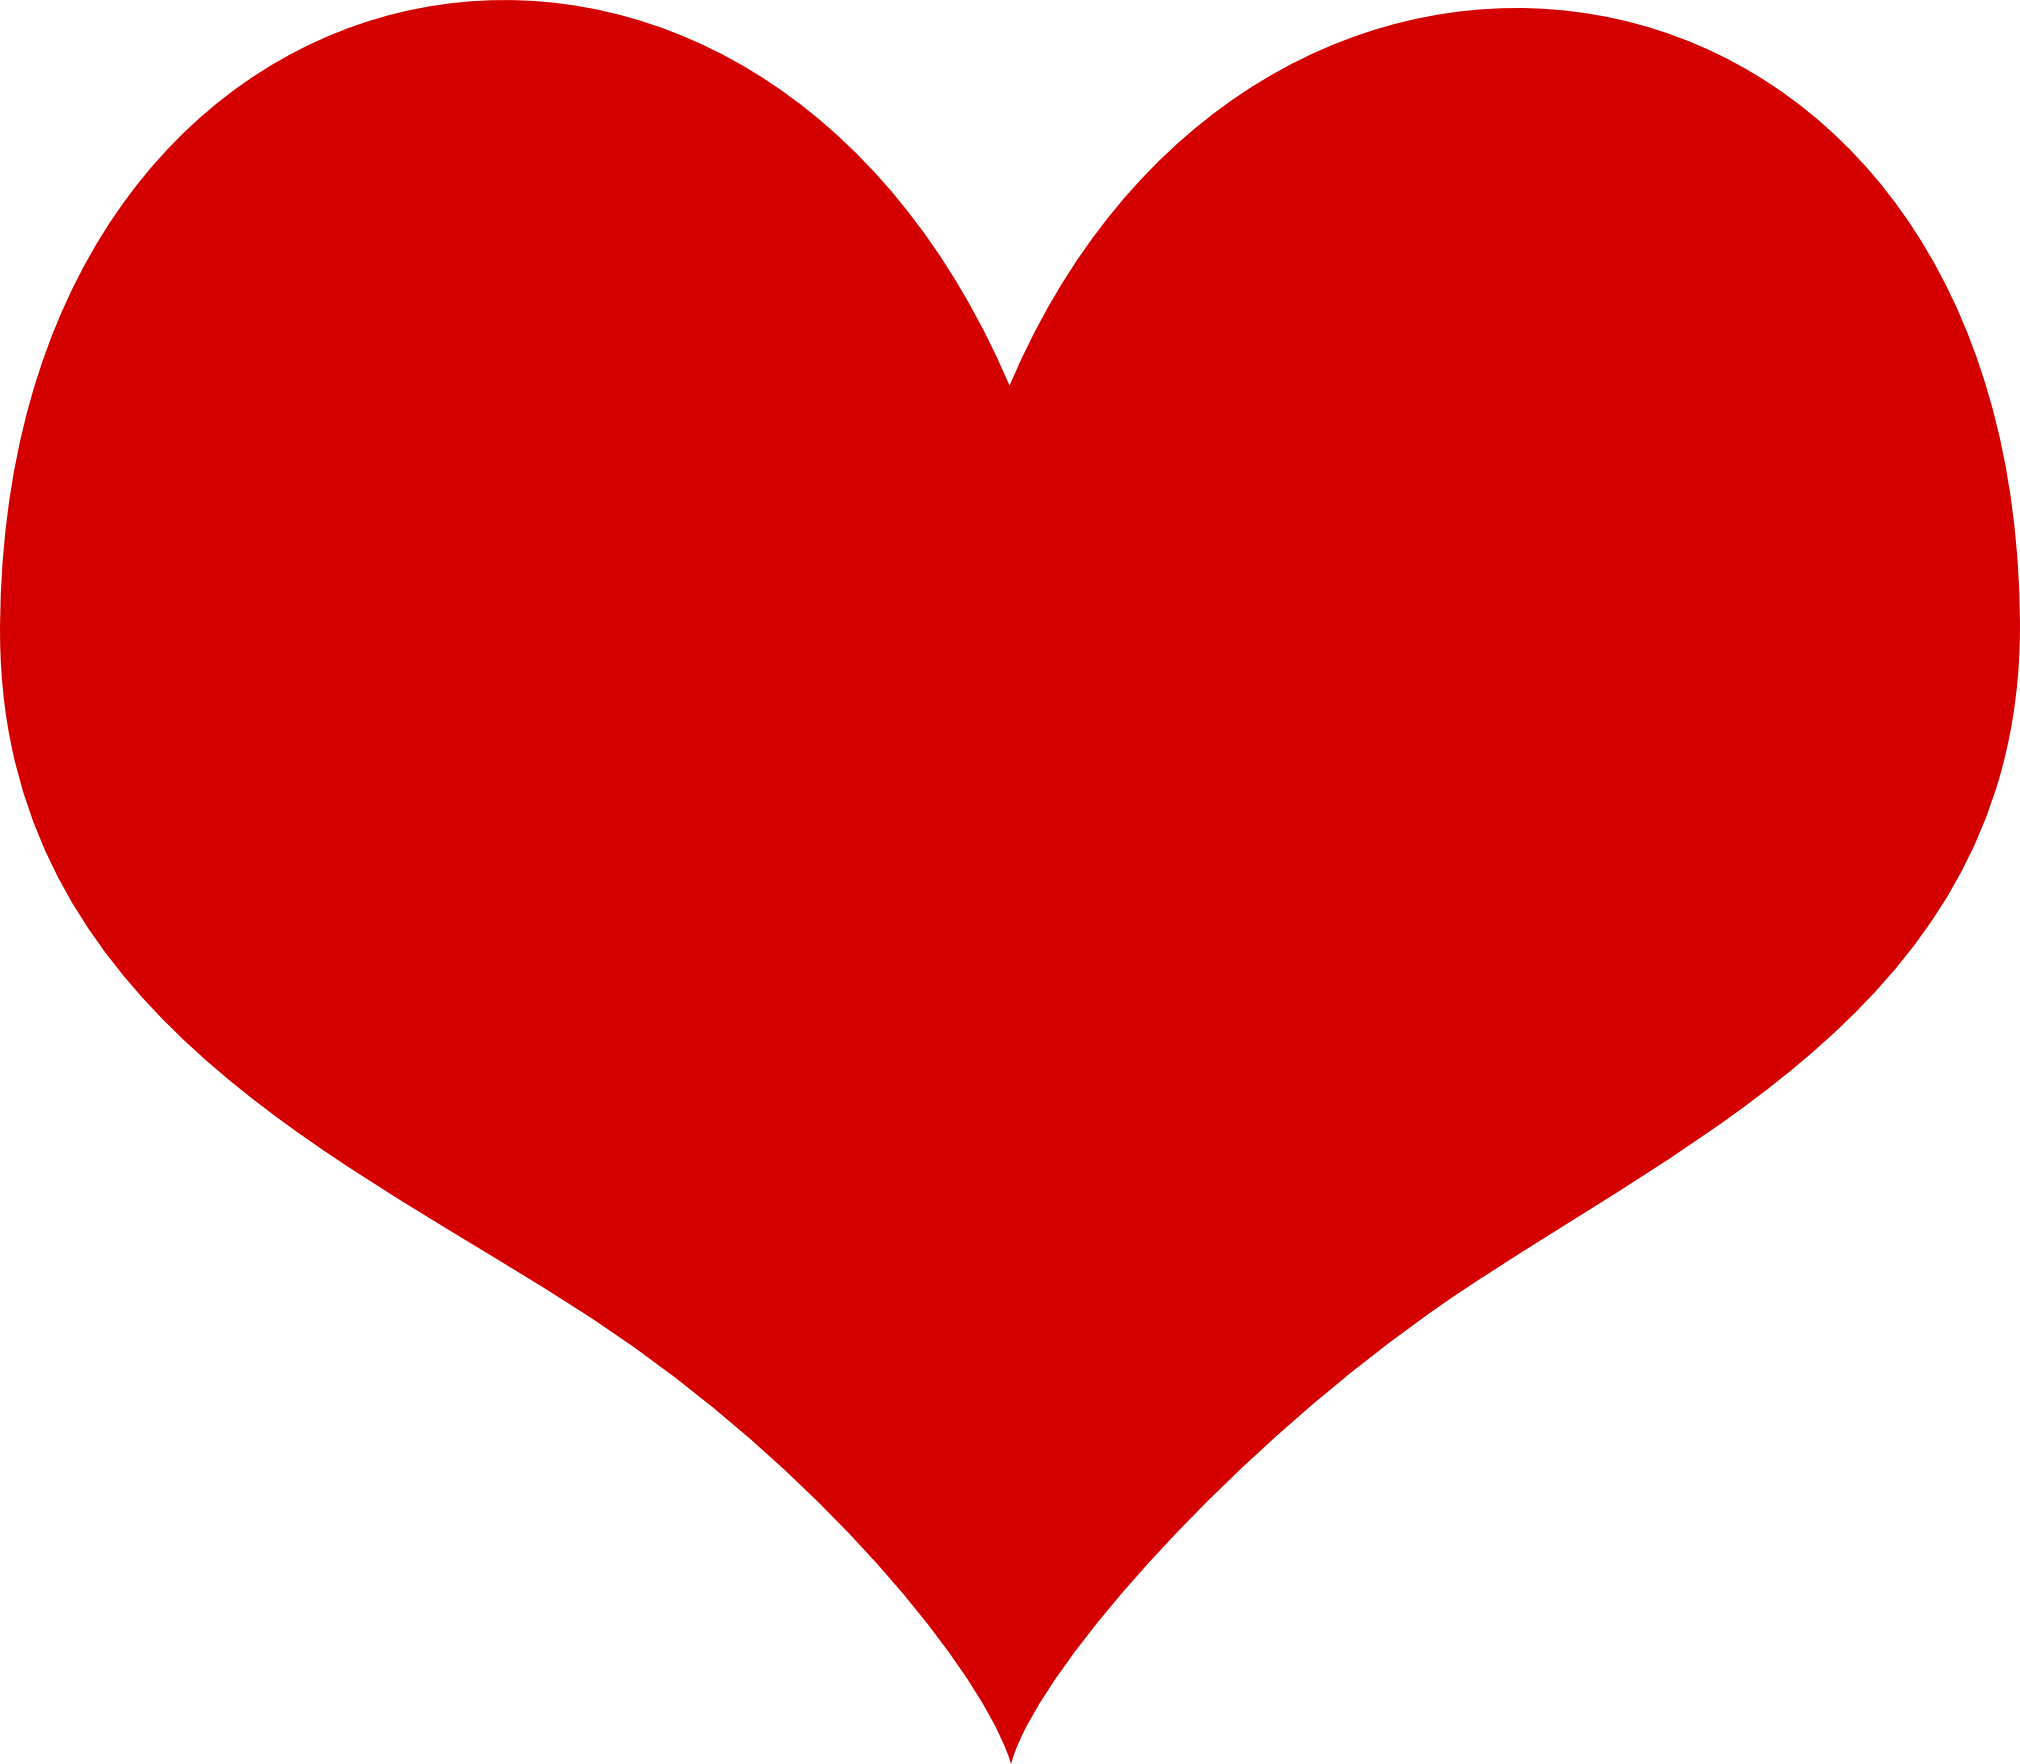 Heart, png love. Transparent heart hd free